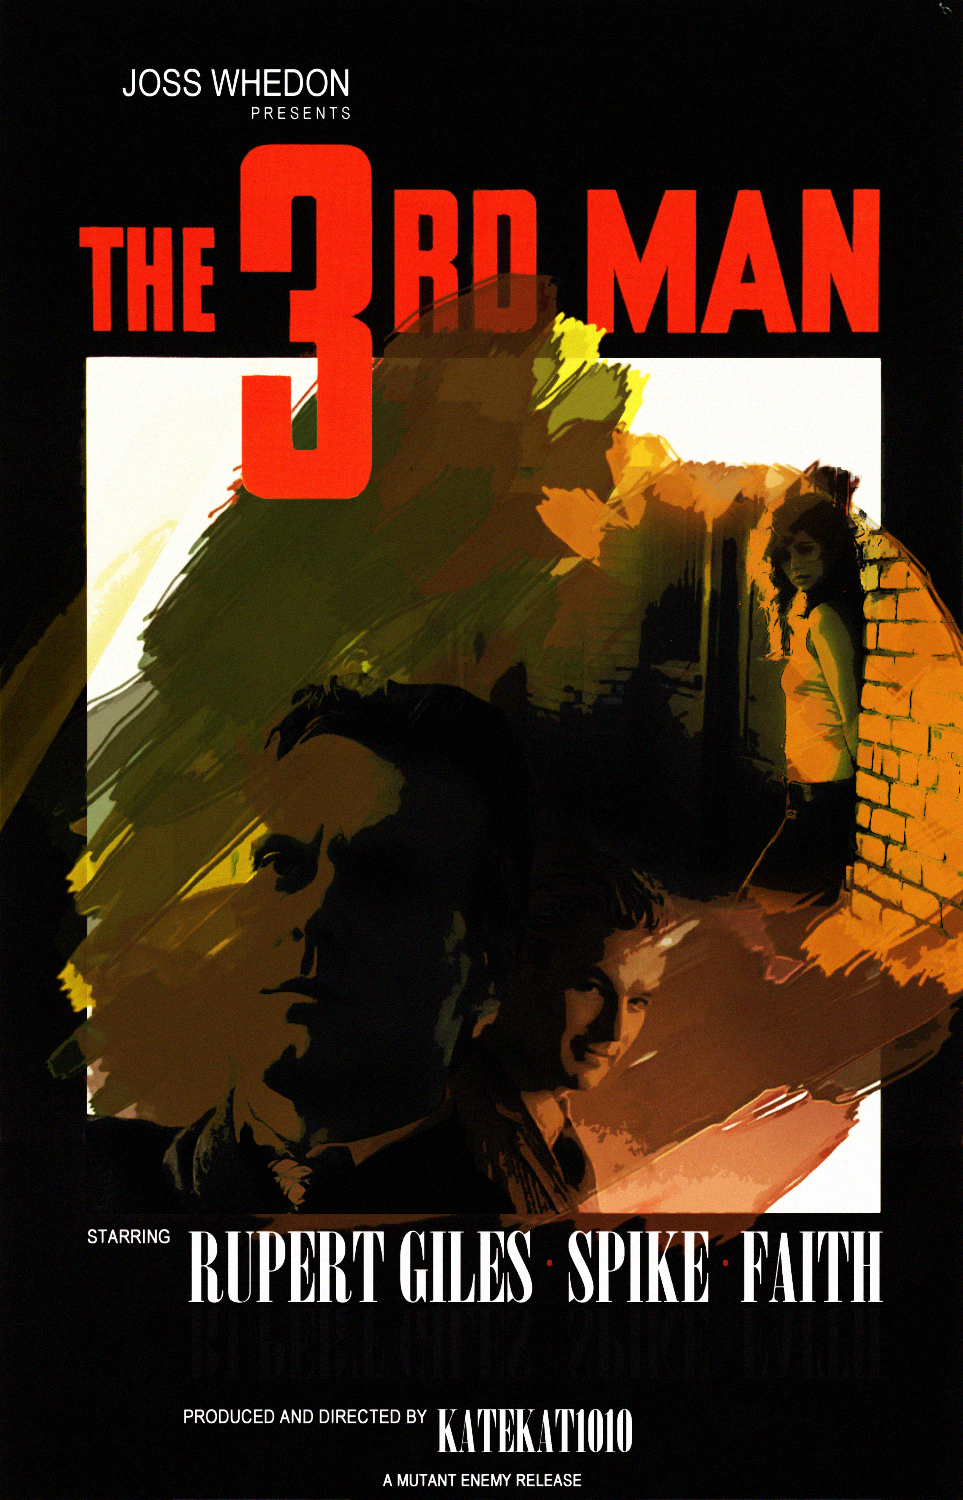 Film-Noir-Poster---Third-Man